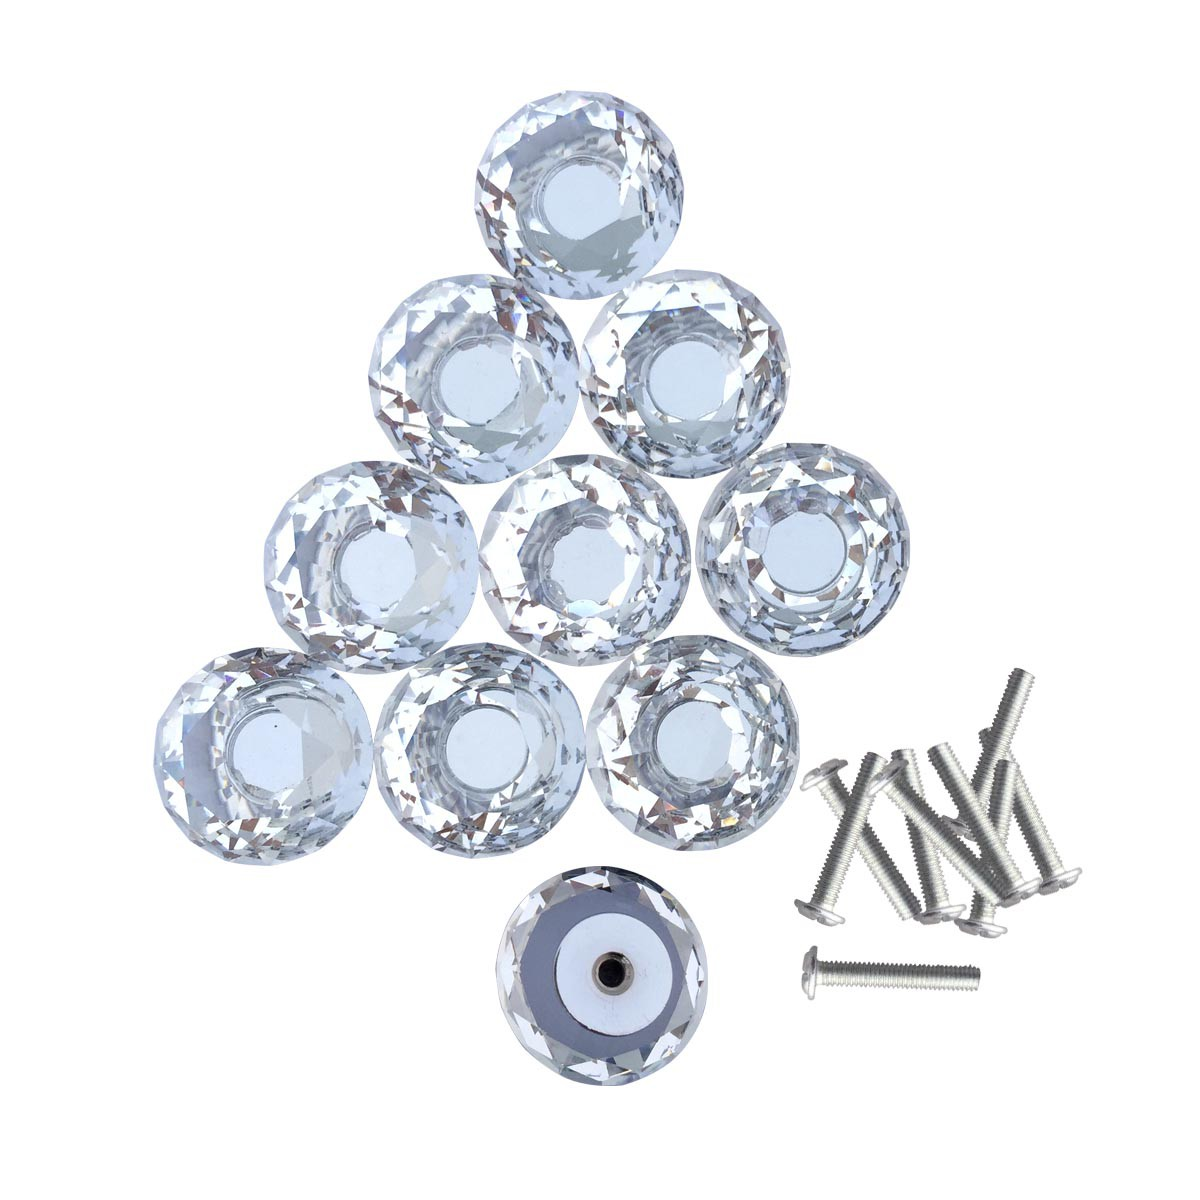 Clear Glass Cabinet Knobs 1.8 Inch Projection Mushroom 40 pcs Cabinet Hardware Cabinet Knobs Cabinet Knob